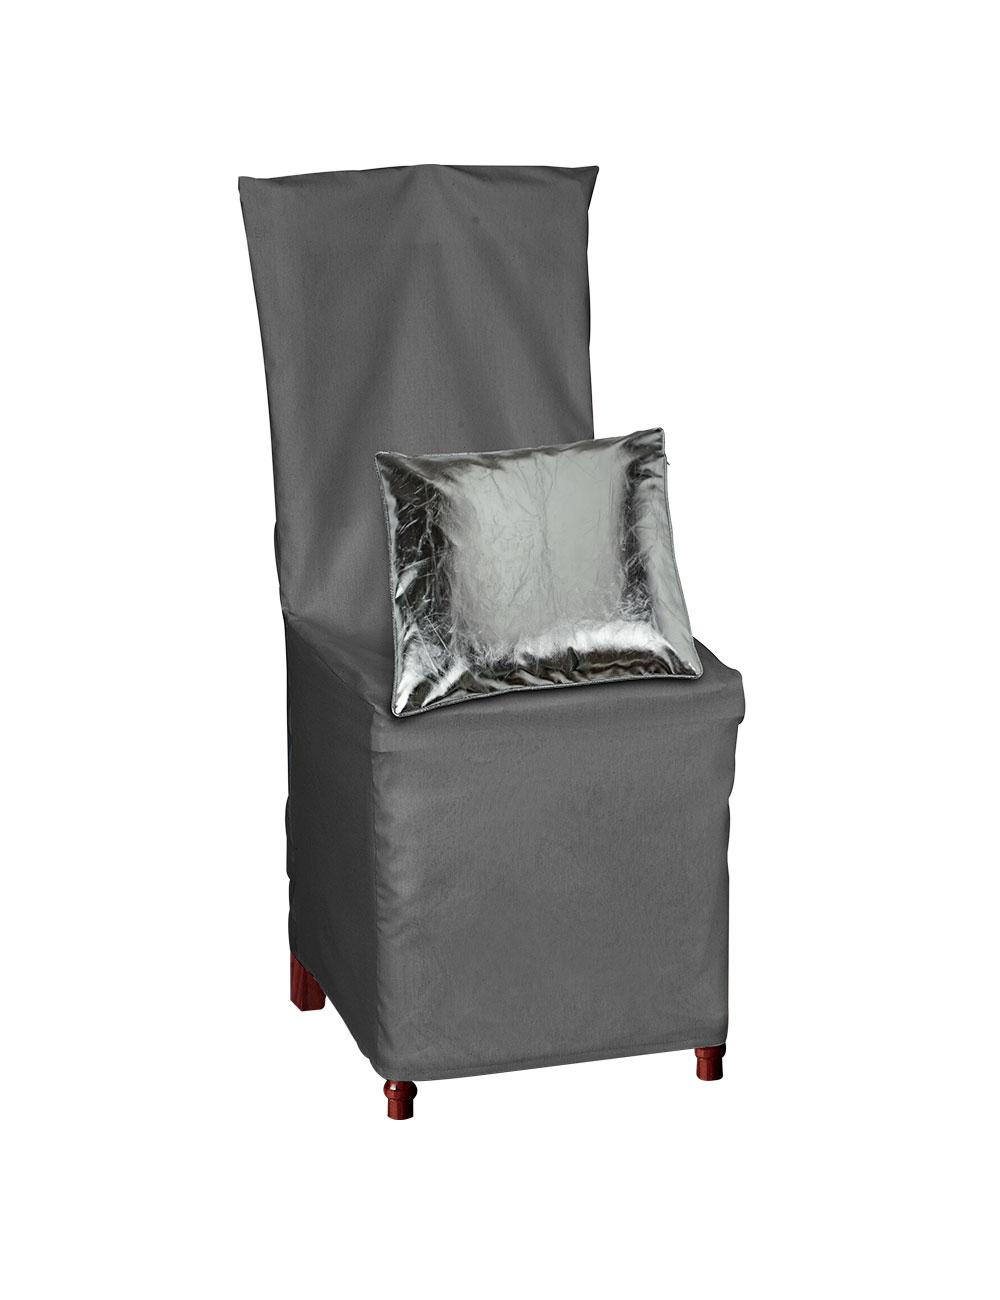 Housse de chaise avec noeud d co gris for Housse de chaise gris